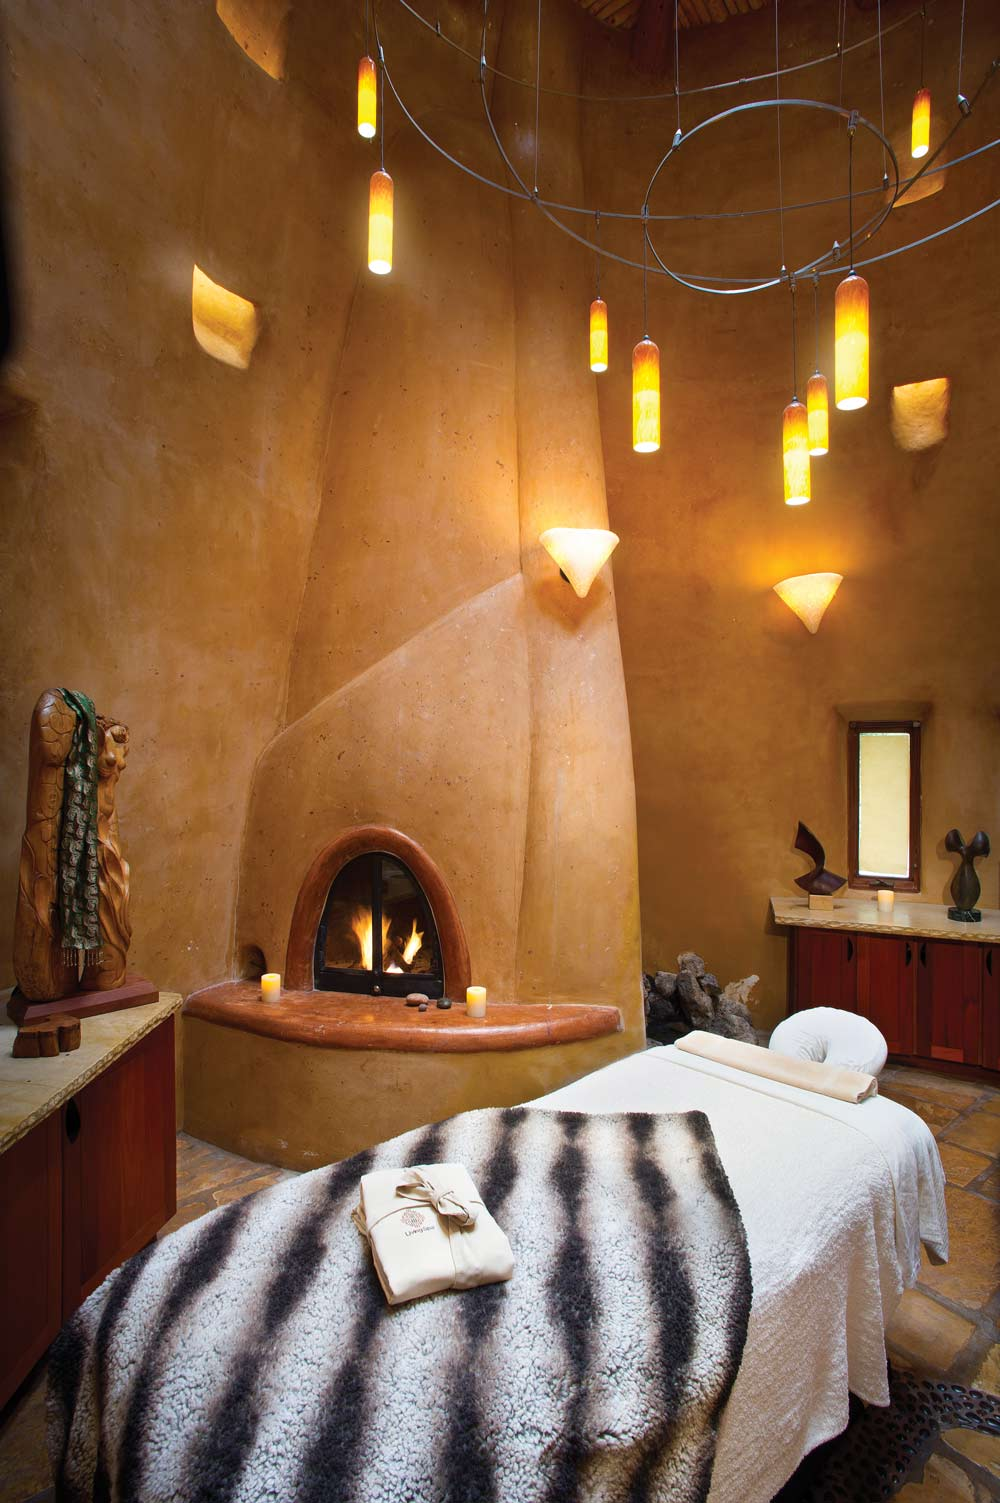 Spa at El Monte Sagrado Living Resort and Spa, Taos, NM